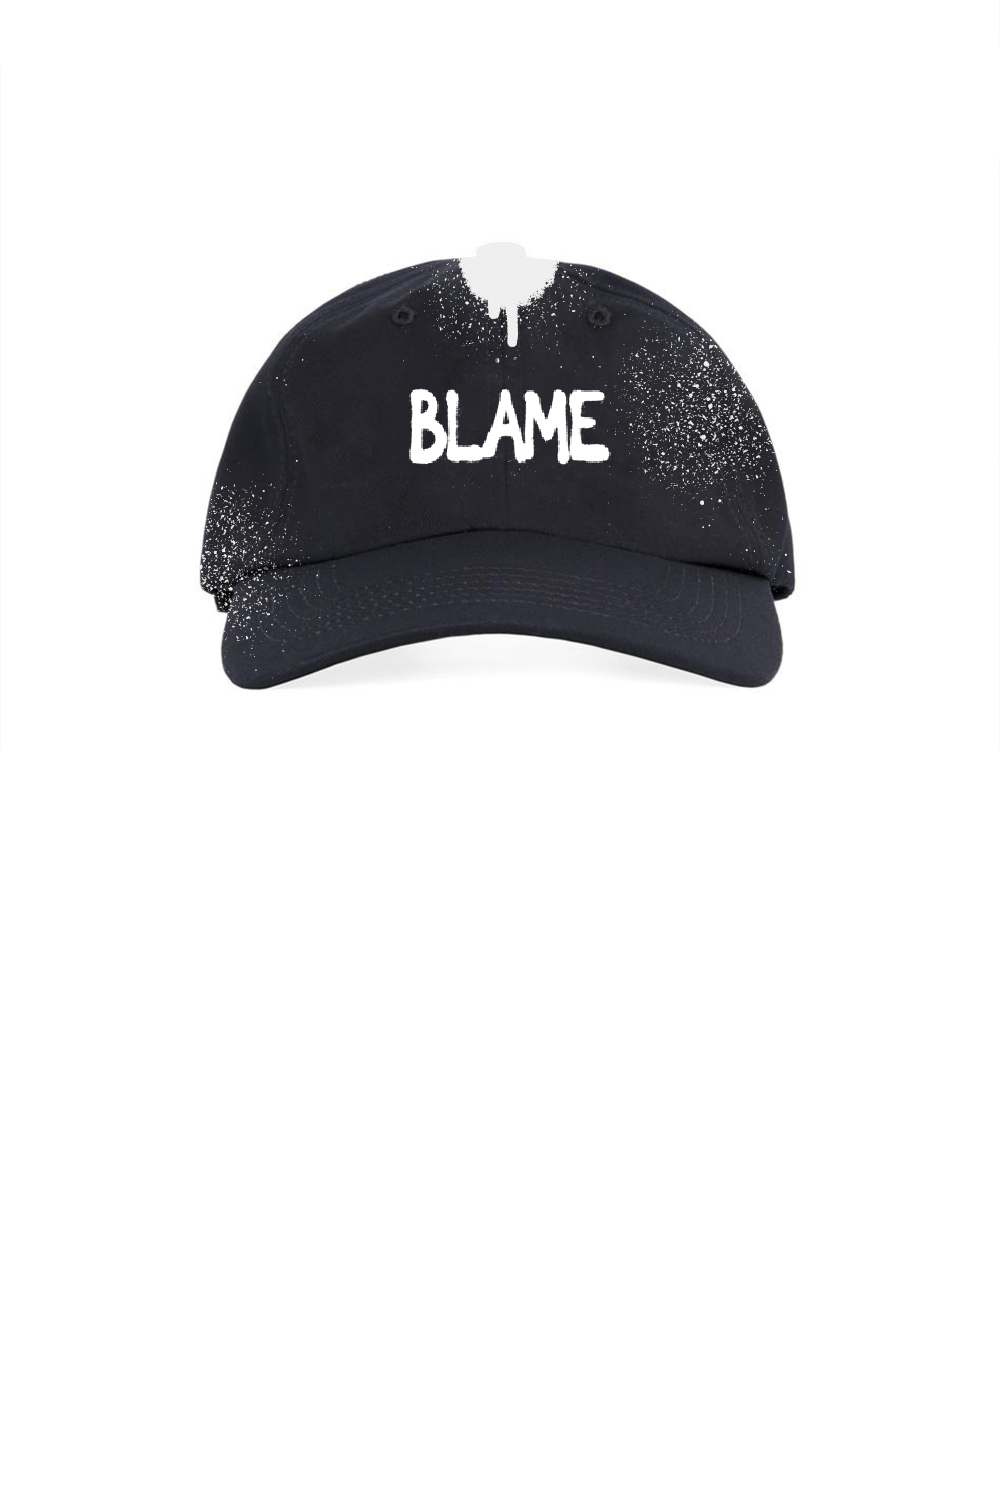 Image of BLAME CAP 2